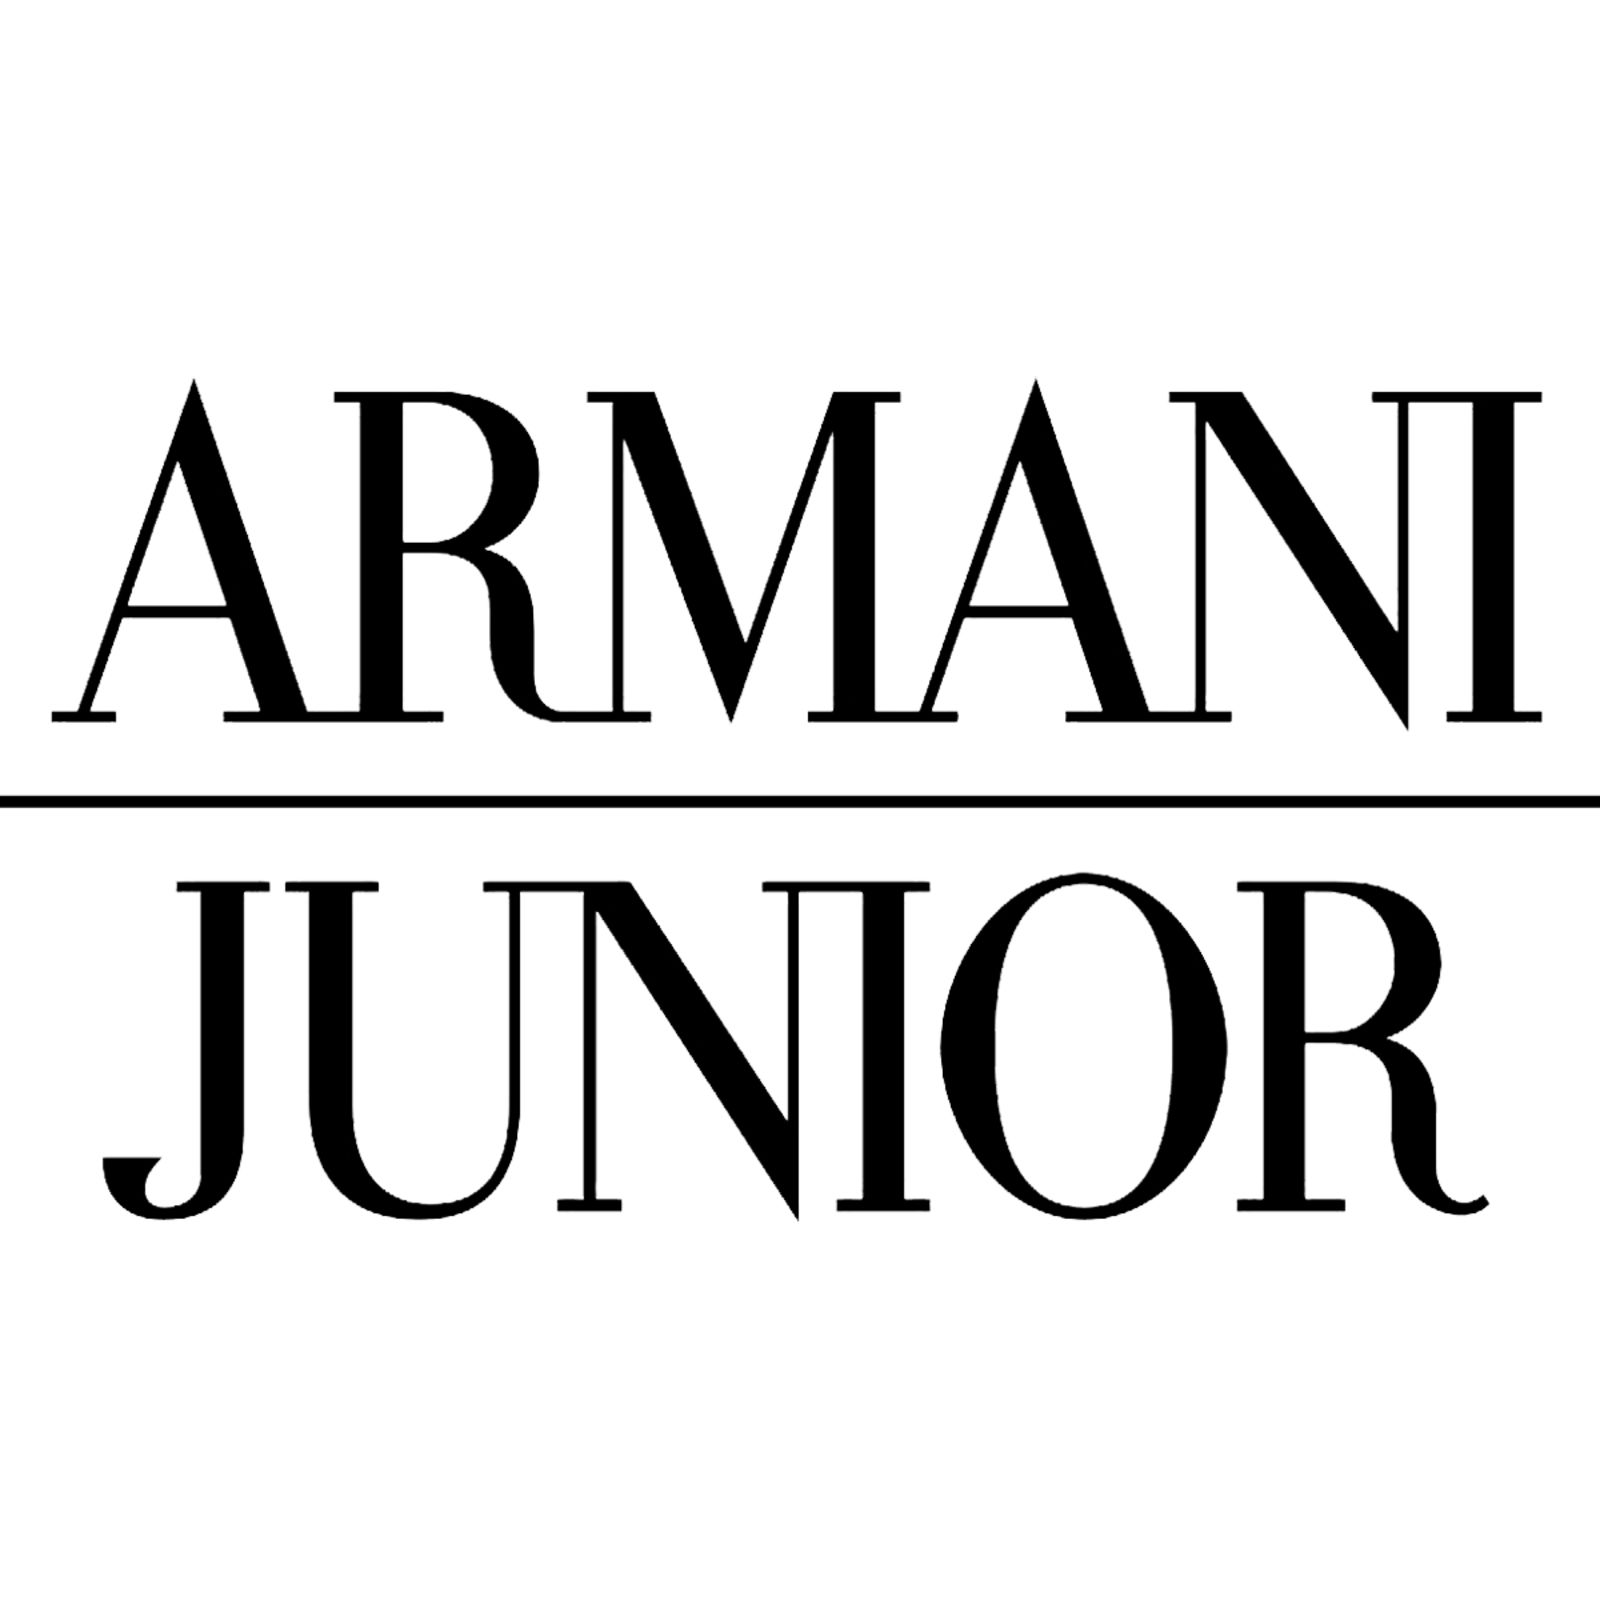 ARMANI JUNIOR (Image 1)